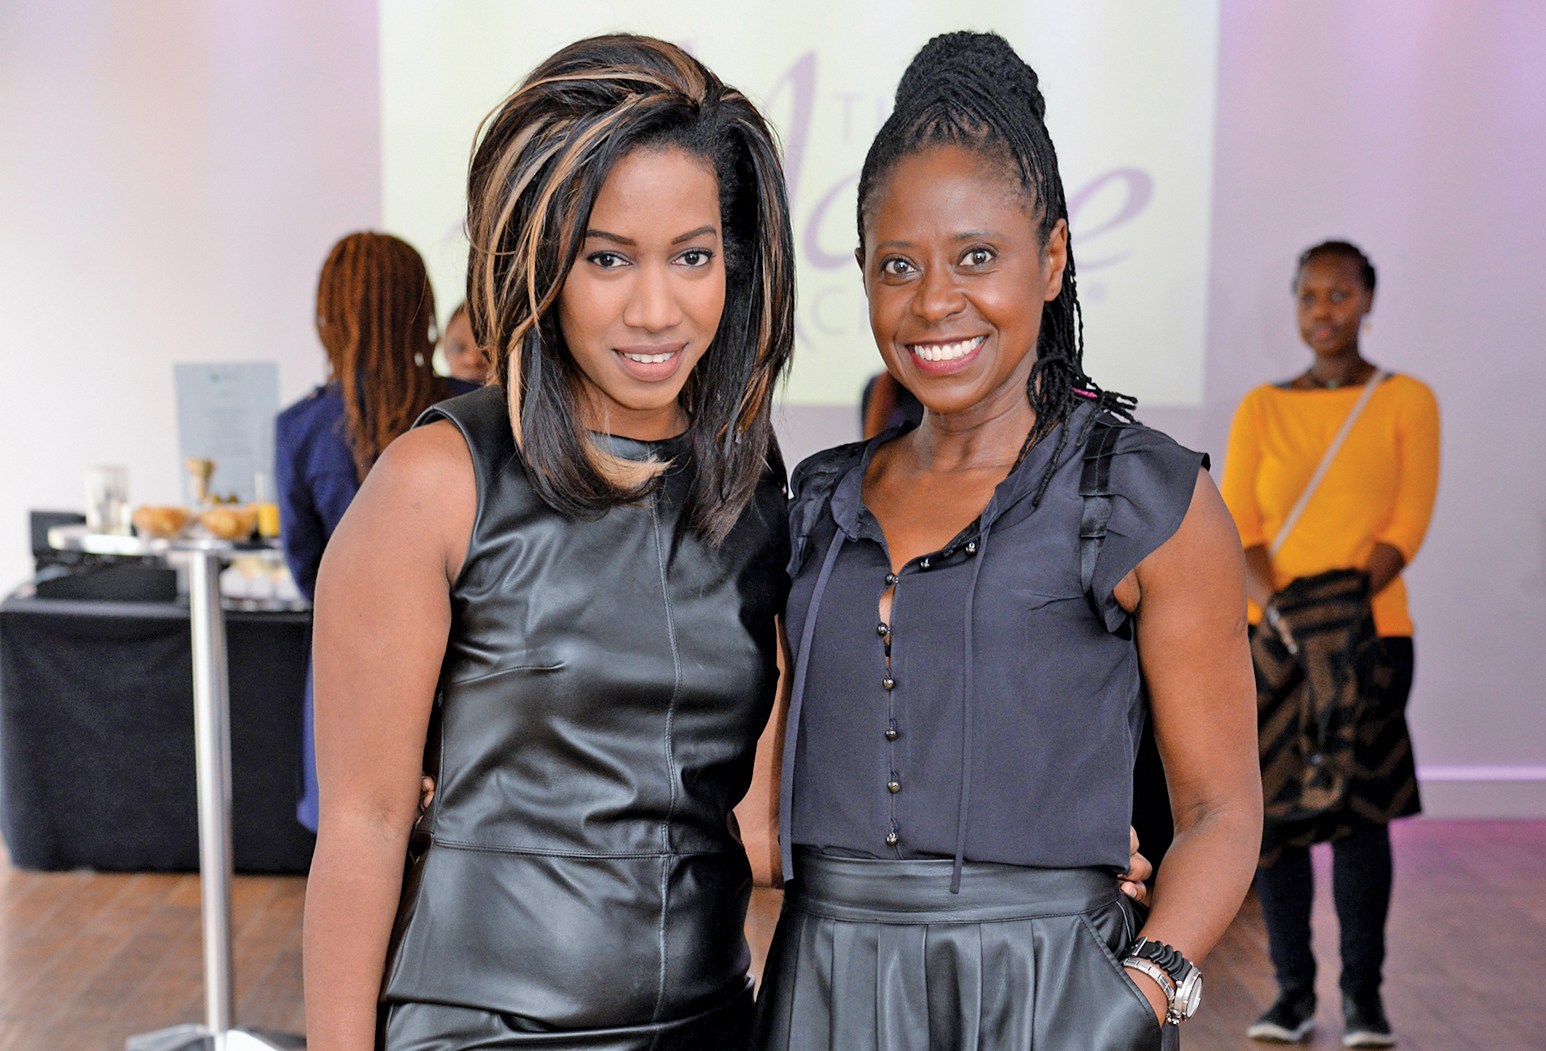 (From left) Deputy editor Jemima Cousins and editor-in-chief Irene Shelley